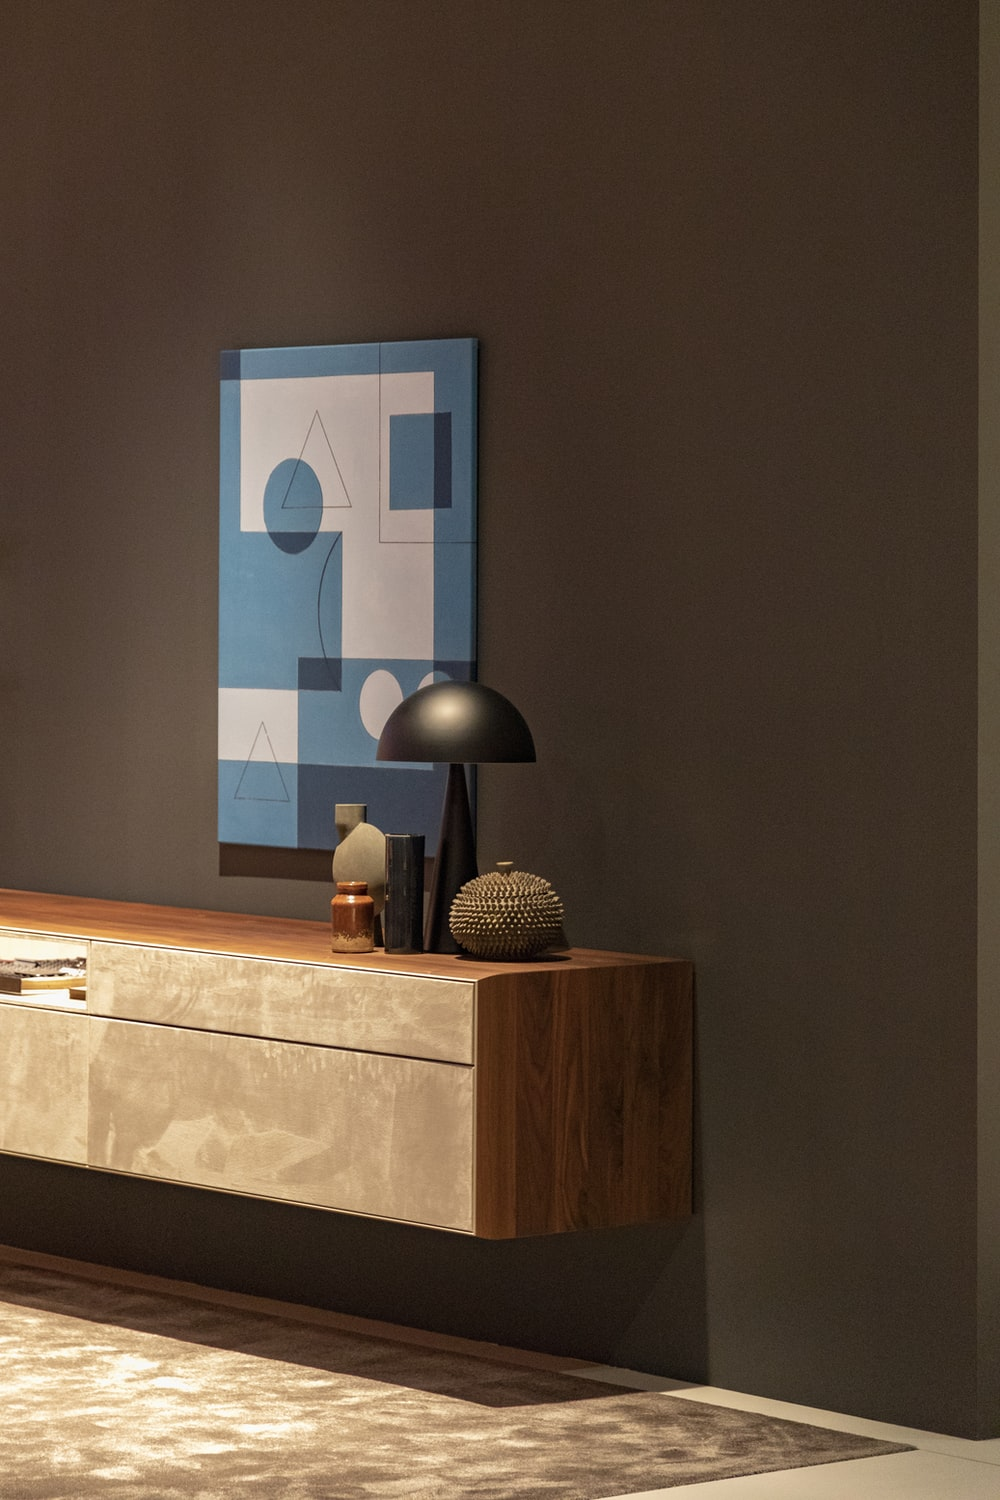 gray table lamp on brown sideboard